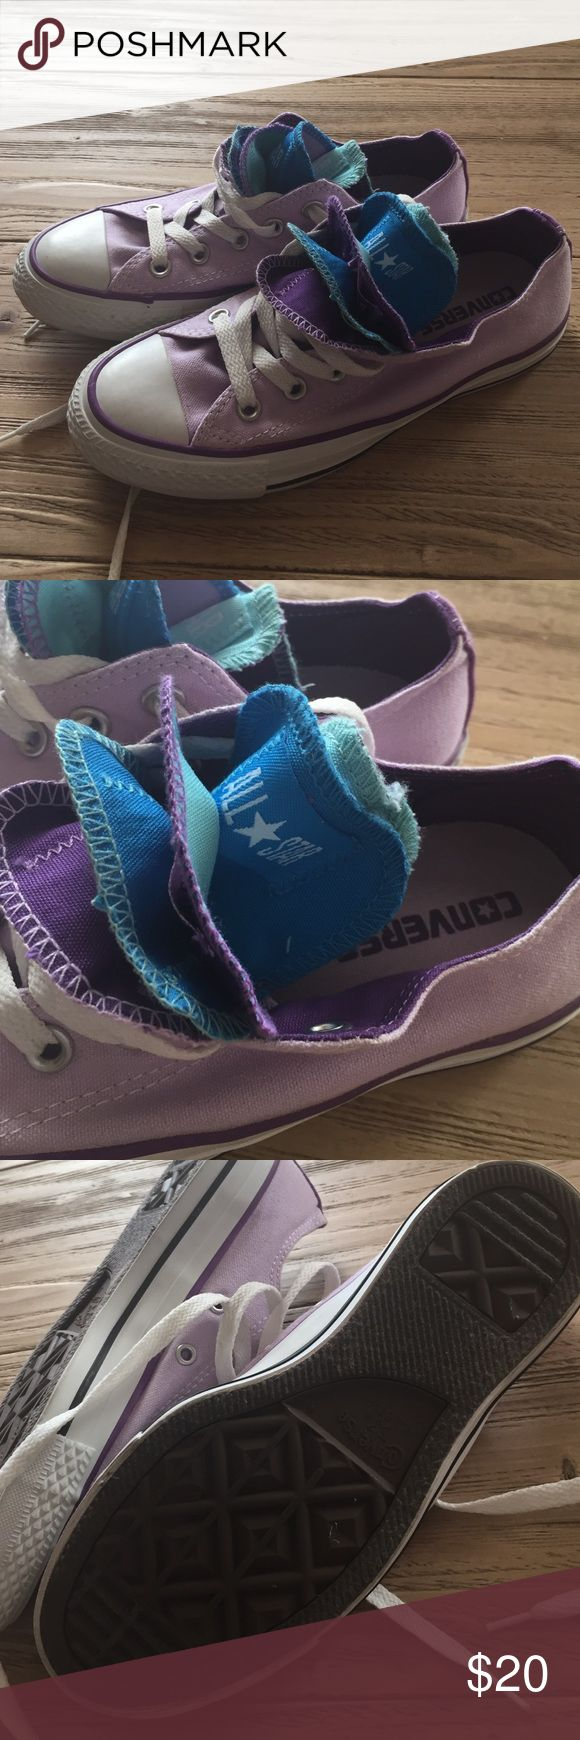 Converse ladies size 6 multi-tongue shoes Ladies Converse size 6 multi- tongue shoes. Lavender with a variety of tongue colors. Great condition. Worn a couple of times. Converse Shoes Athletic Shoes